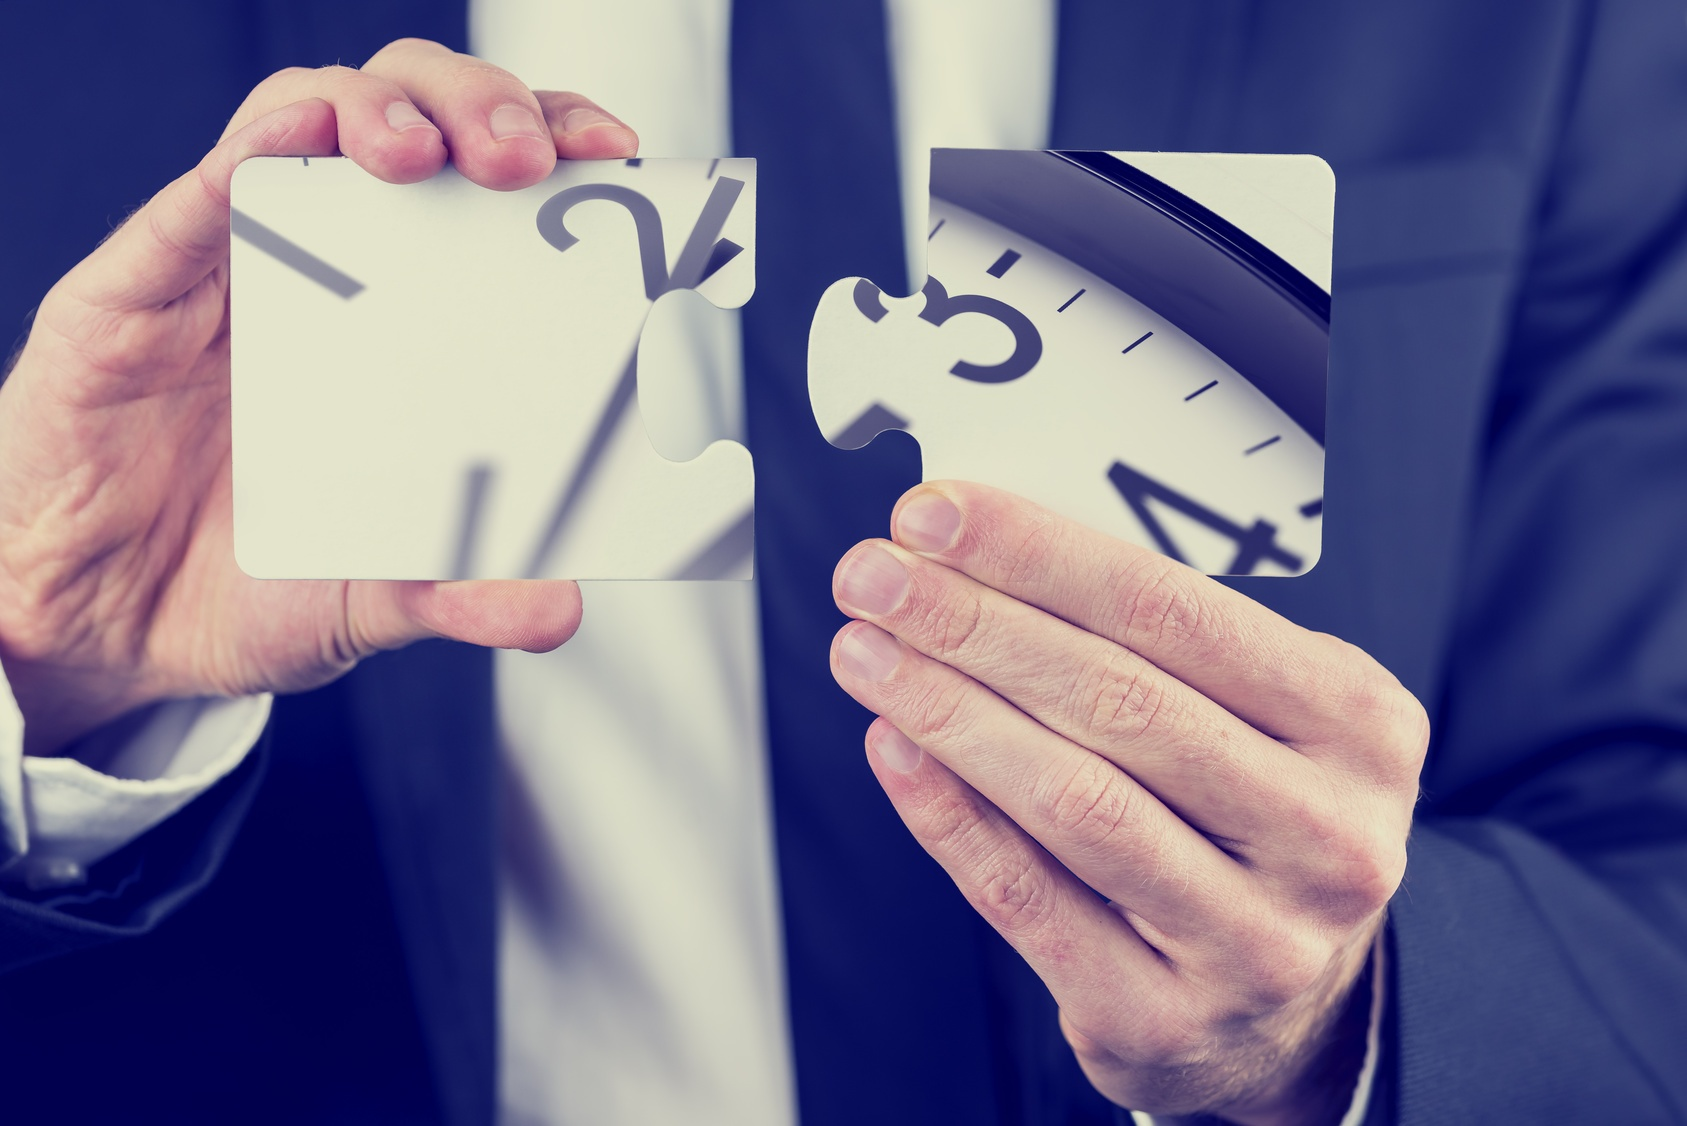 22 Quotes About Time & How to Use Your Time to Sell More Strategically